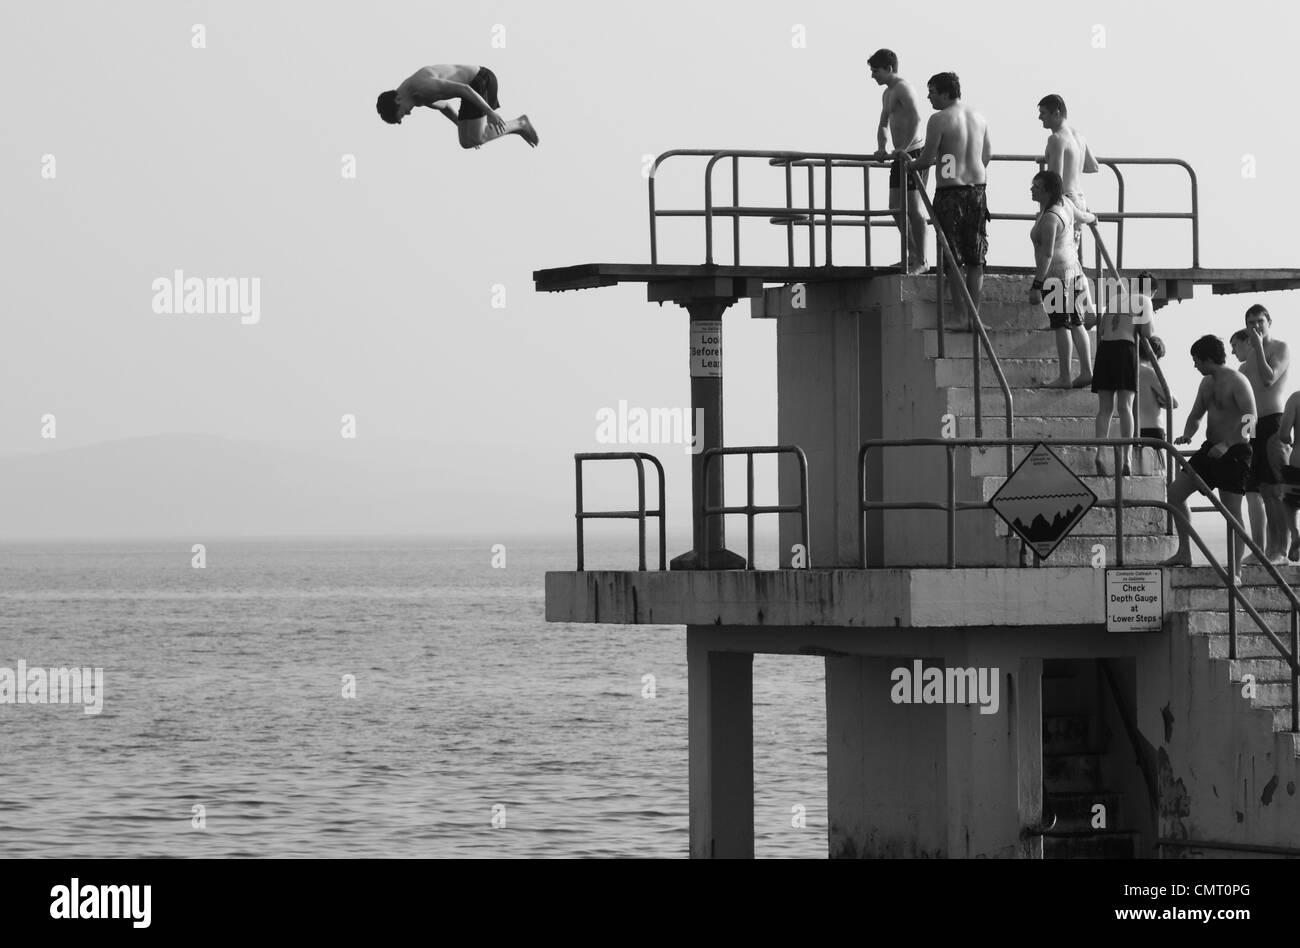 A shot of a man somersaulting off Blackrock diving board while a group of onlookers in bathing suits watch from - Stock Image